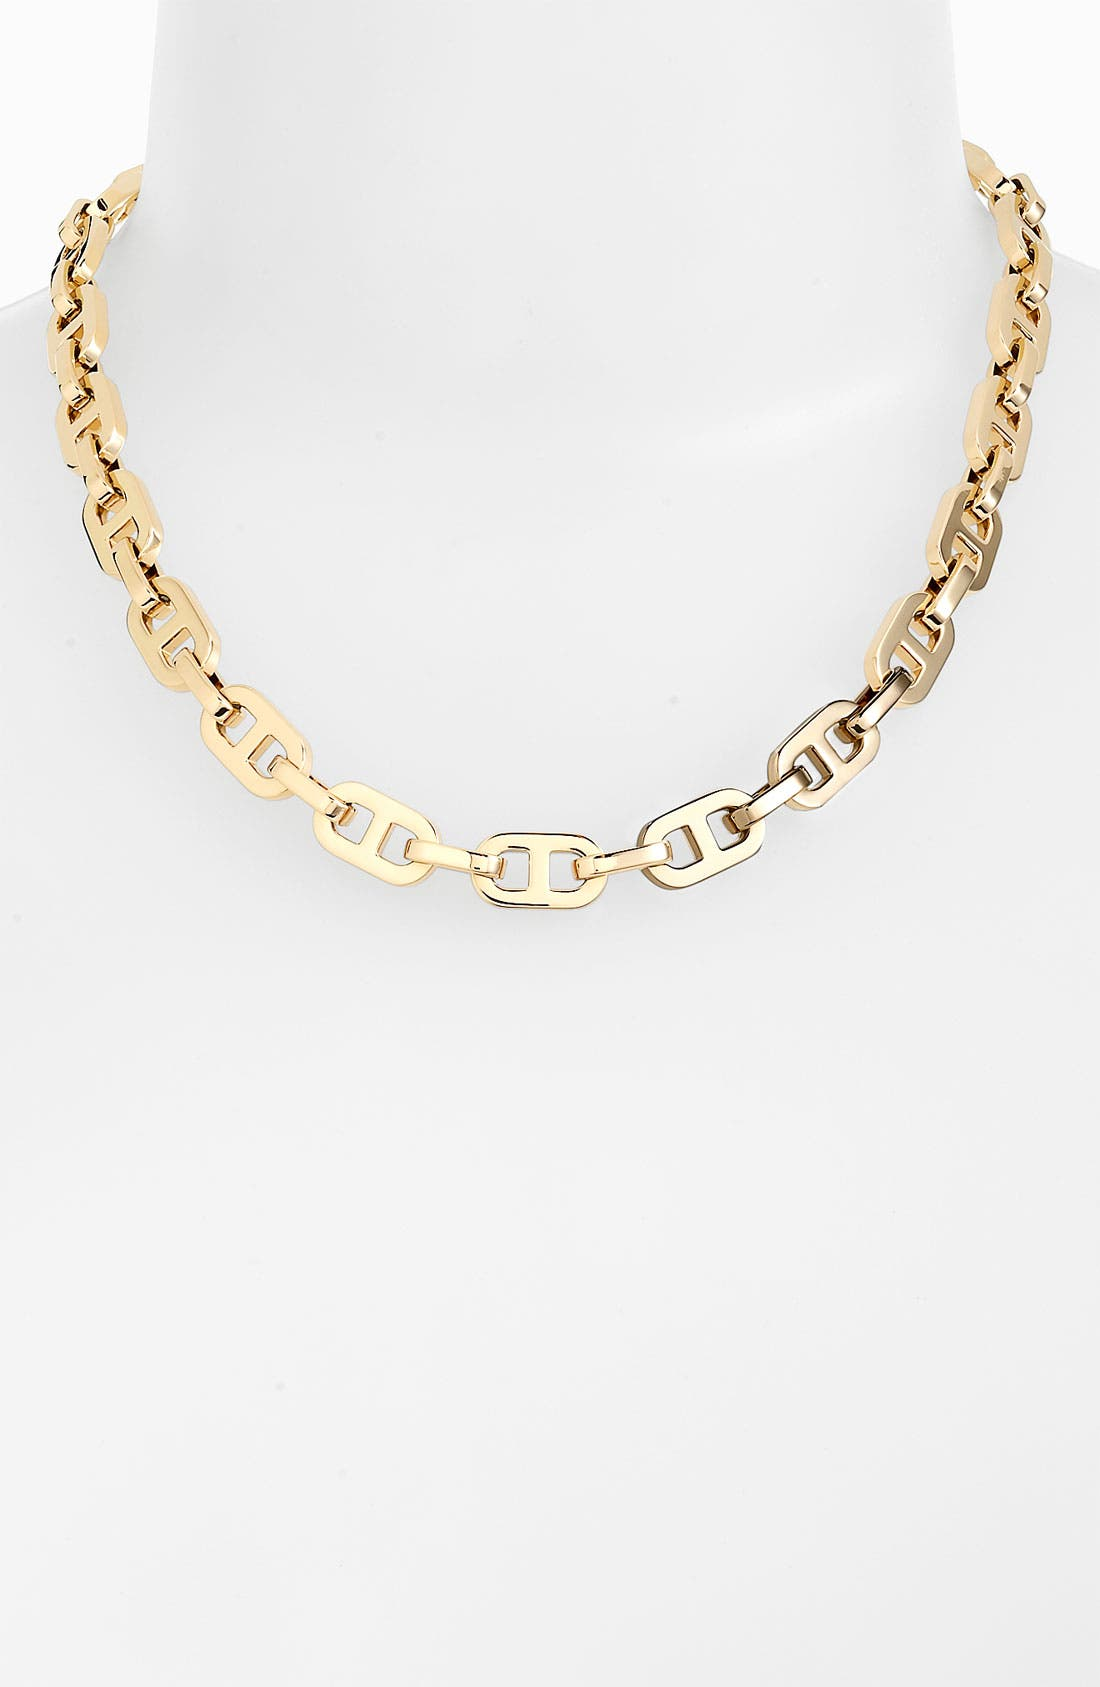 Alternate Image 1 Selected - Michael Kors 'Equestrian Luxury' Link Necklace